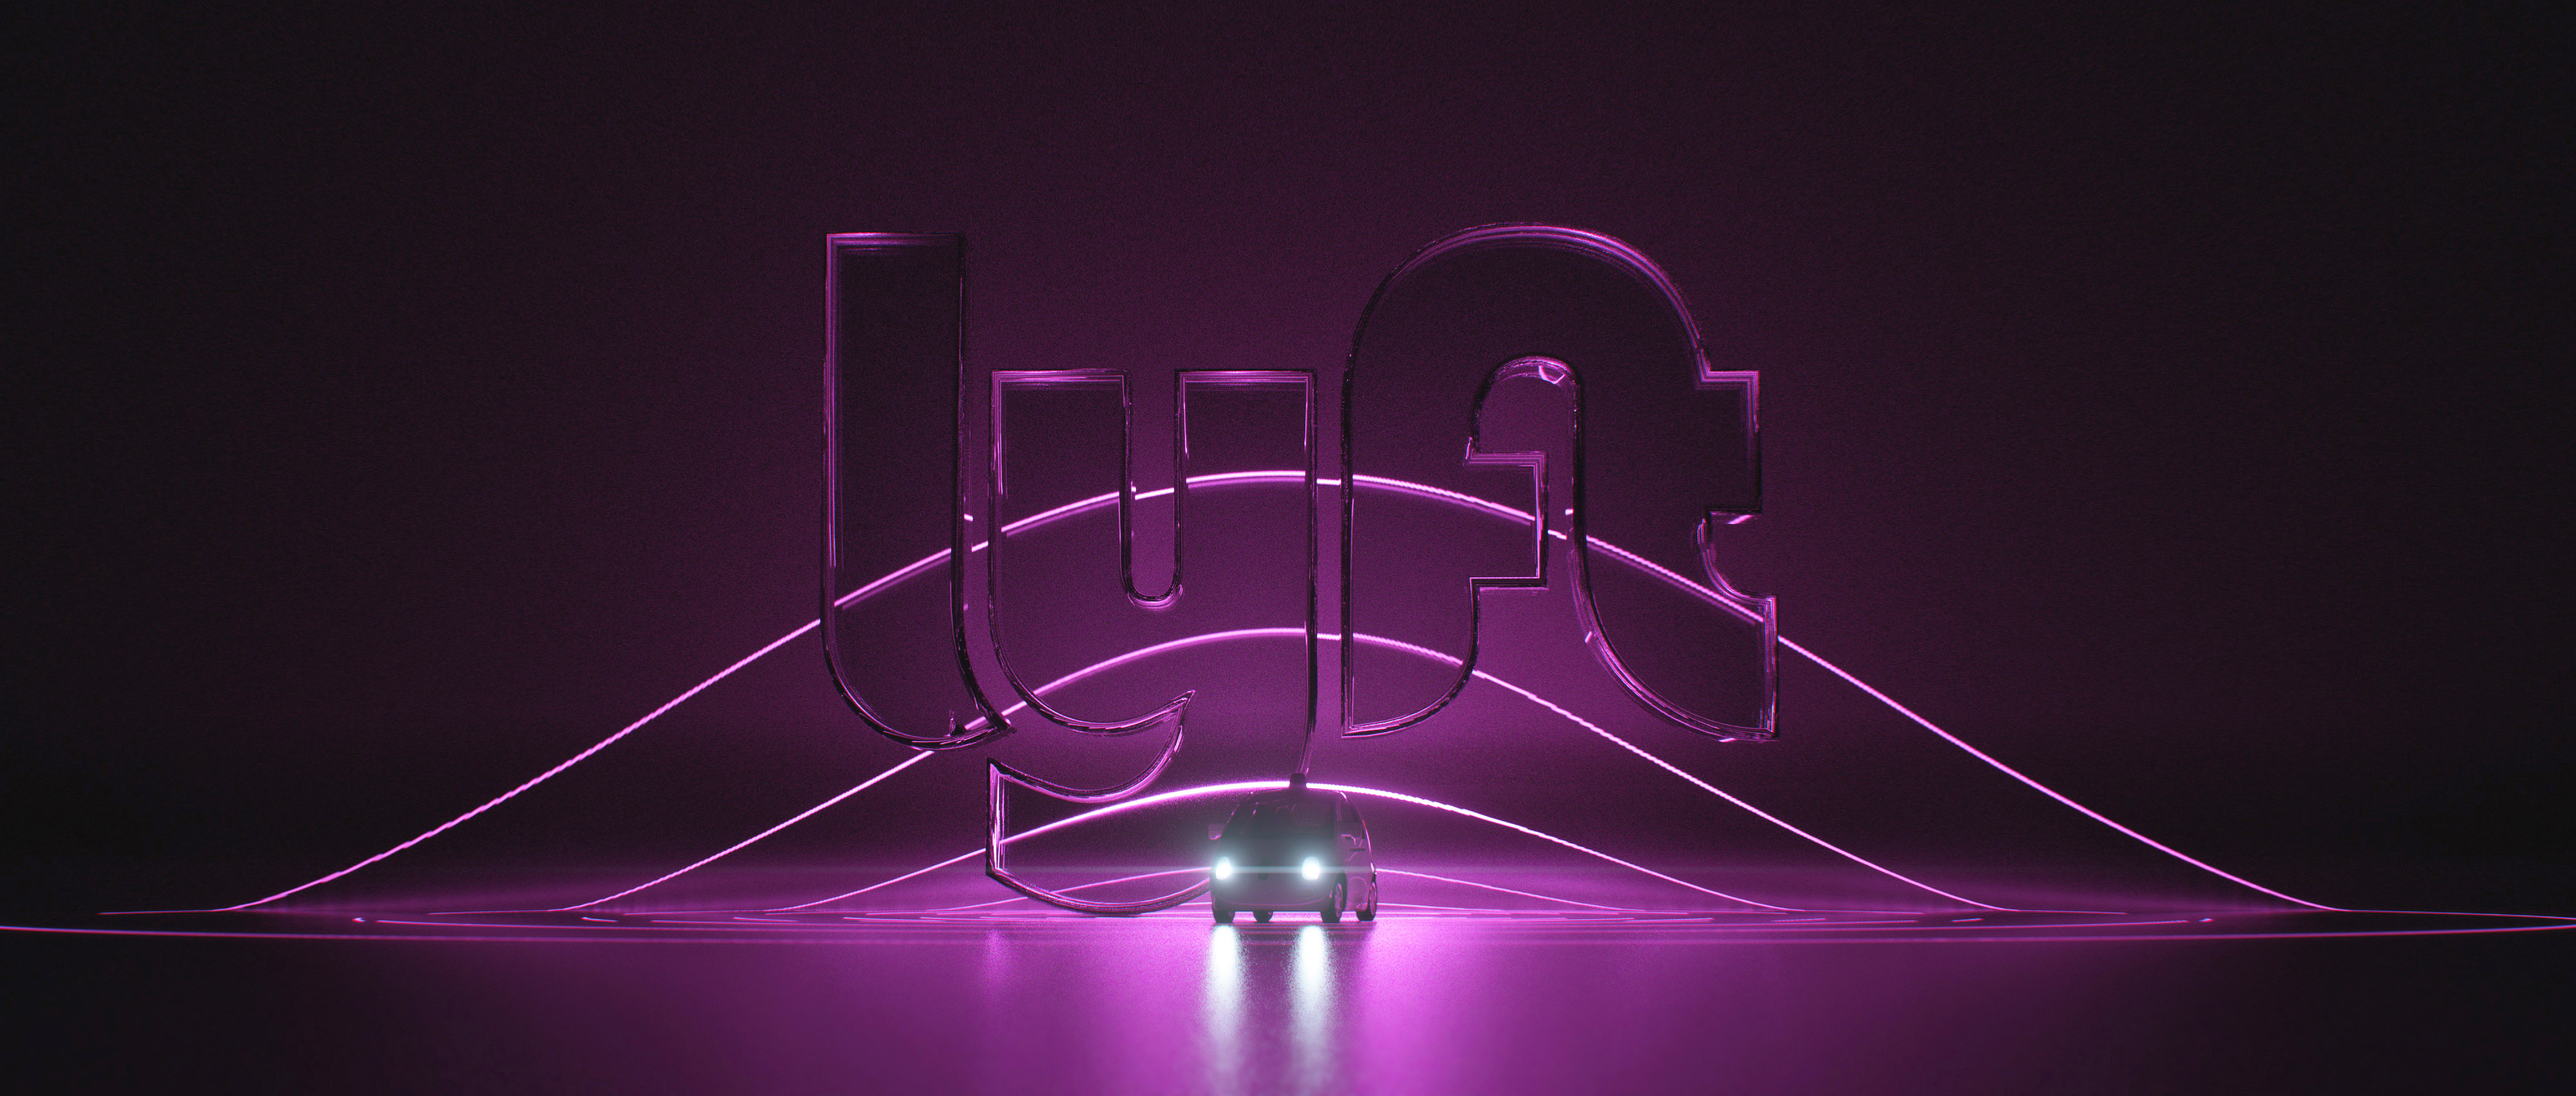 Michael Lo Concept // Motion Designer  LYFT: Autonomous Vehicles